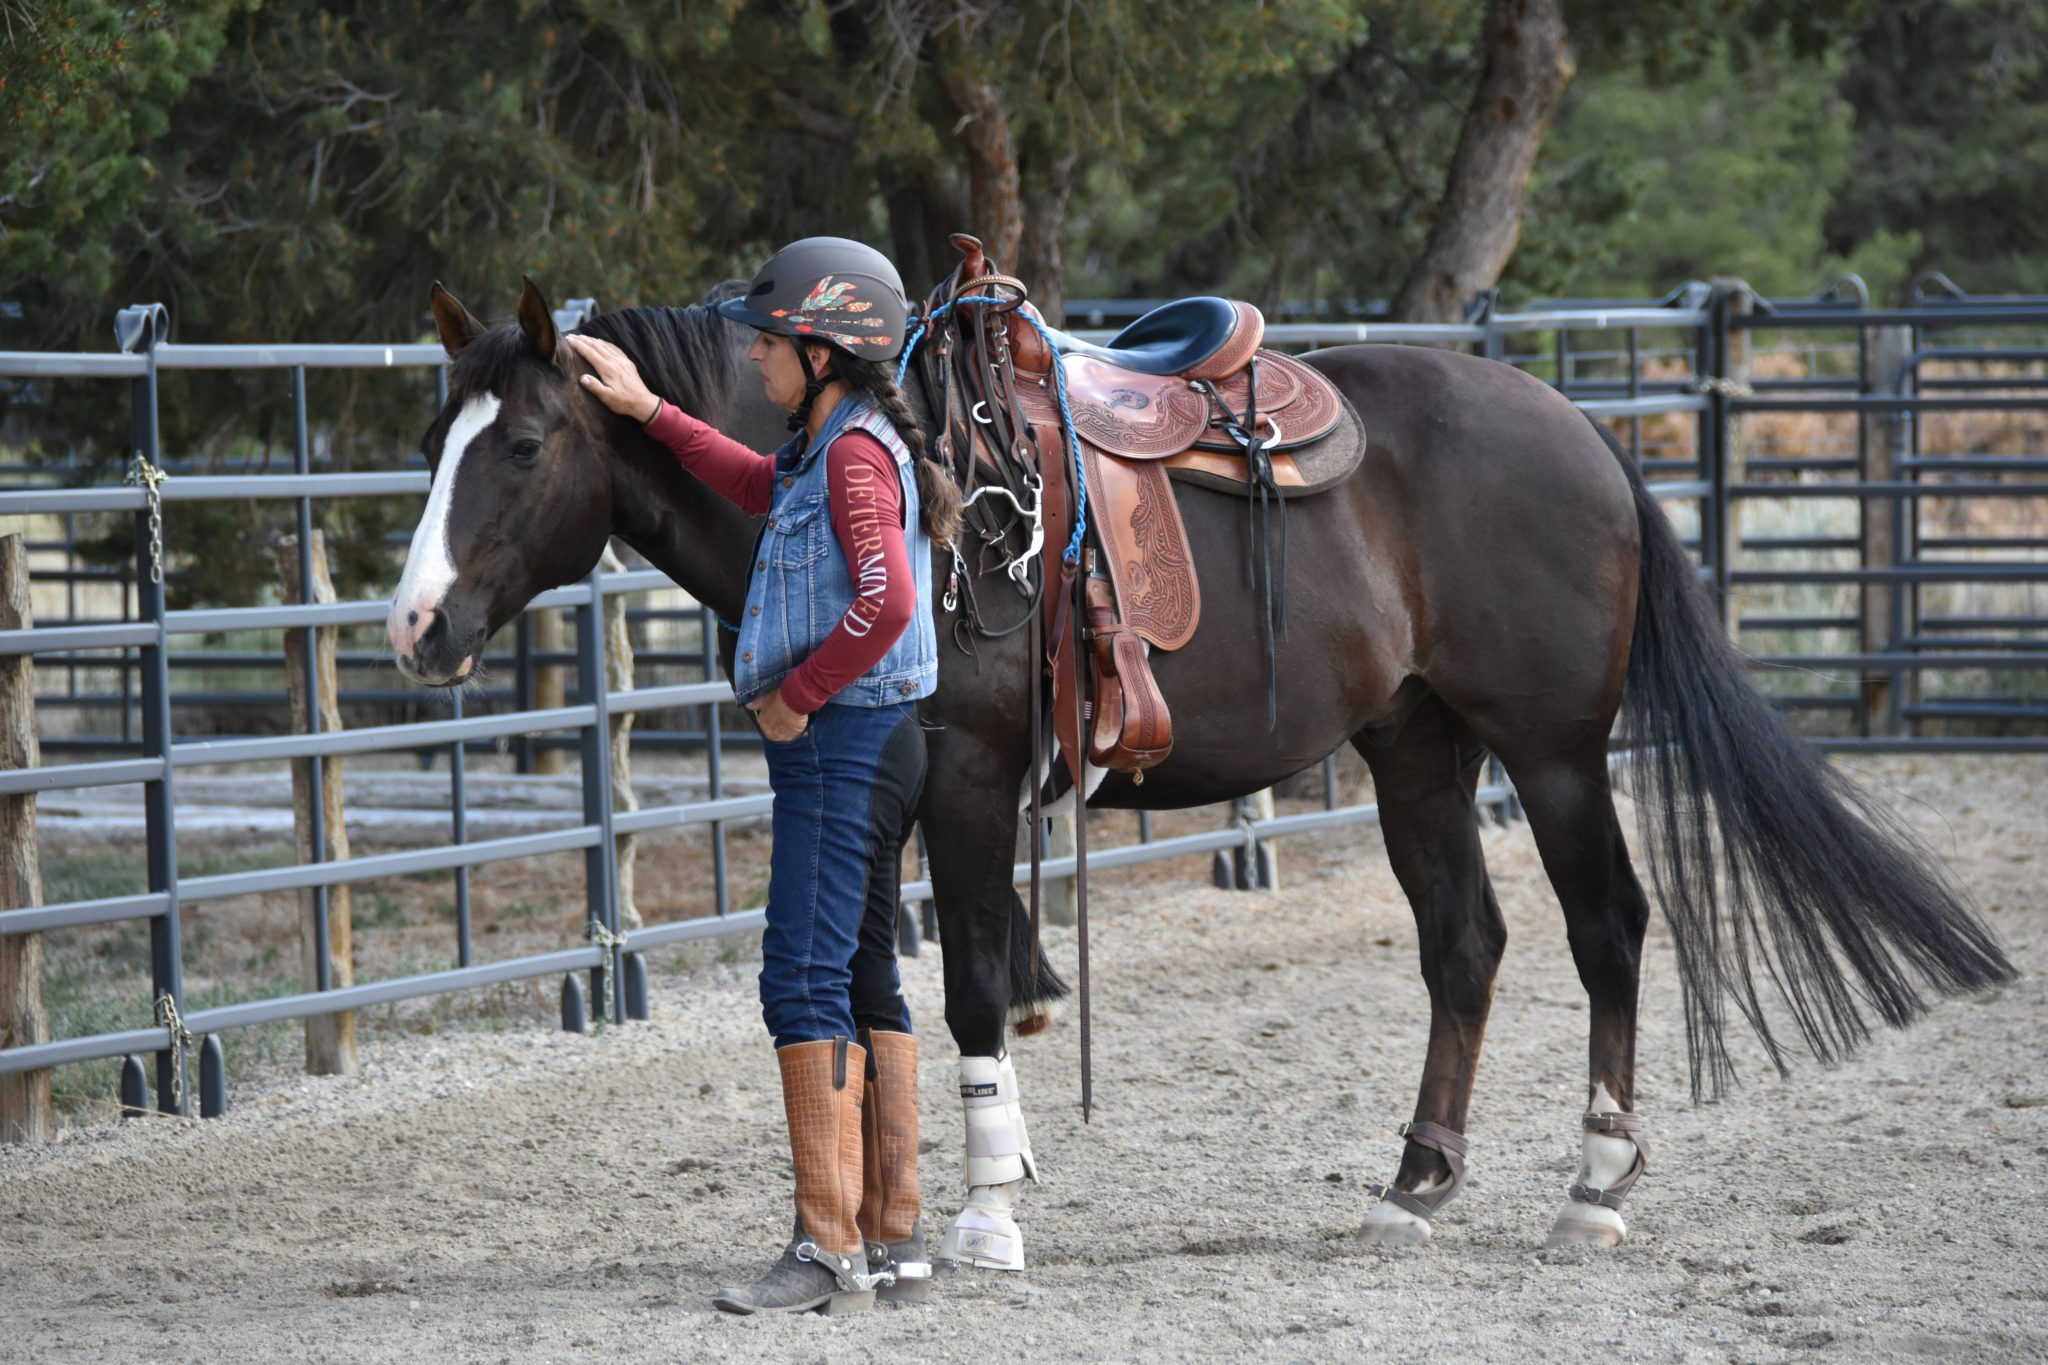 Cultivating a Connection with Horses